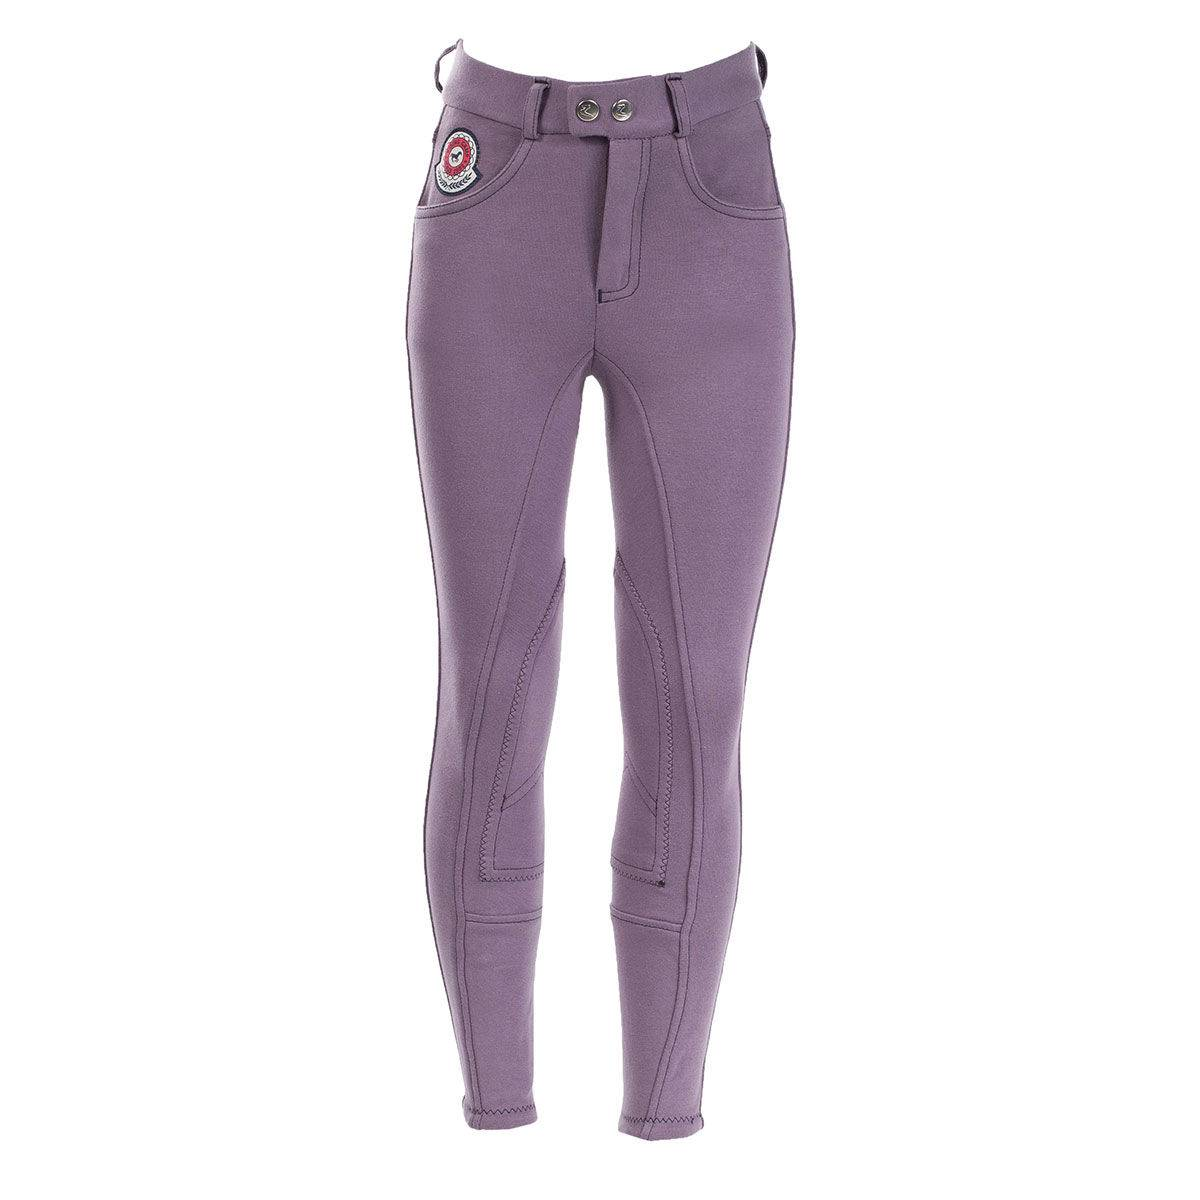 Horze Jen Jr Breeches - Kids, Self Knee Patch